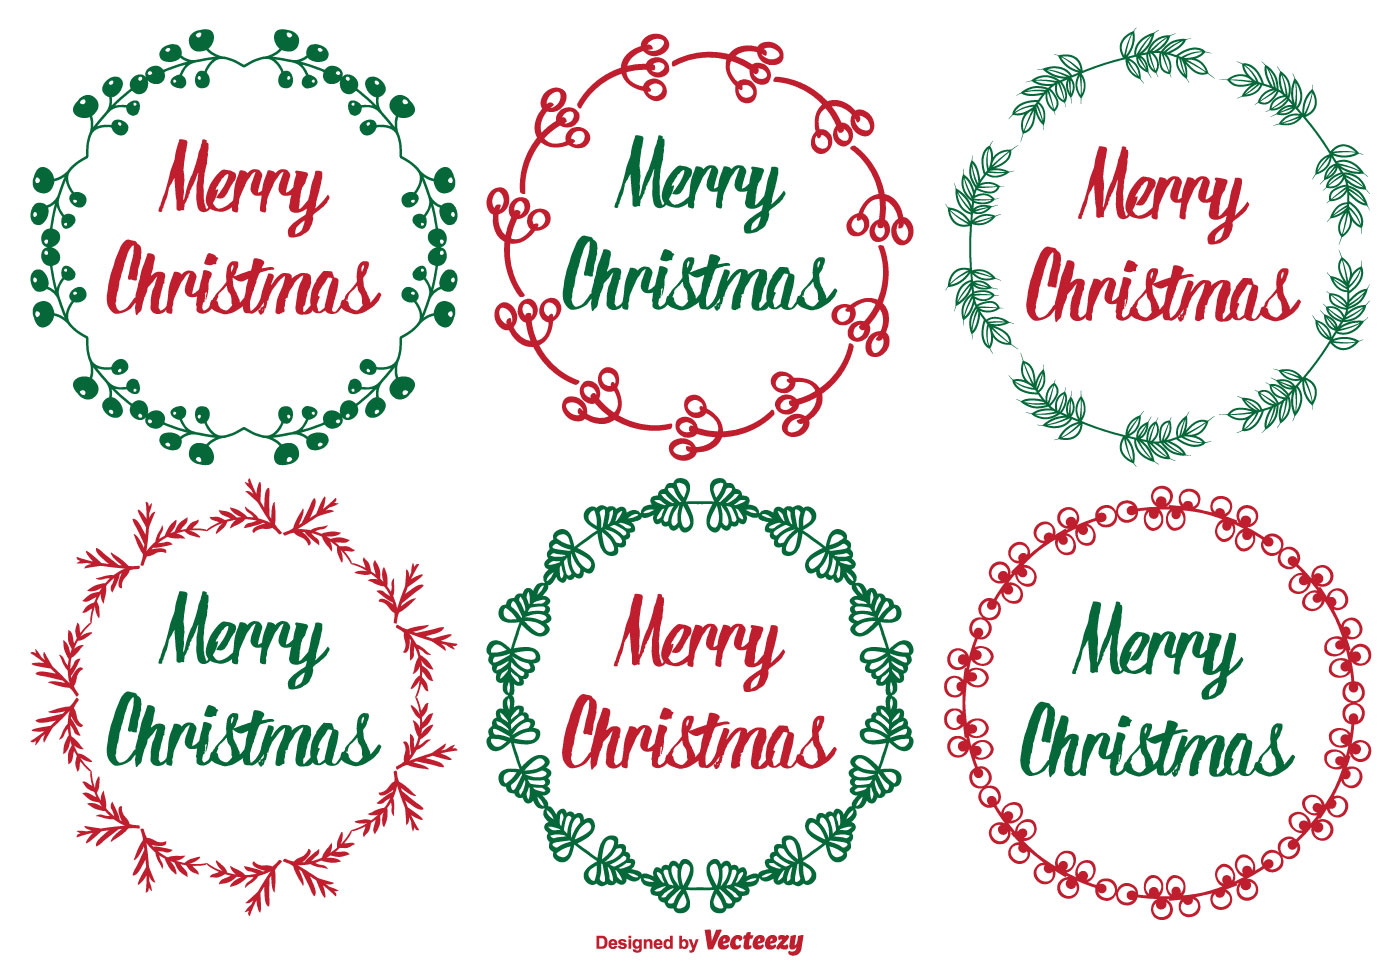 Cute Christmas Label Set - Download Free Vector Art, Stock Graphics ...